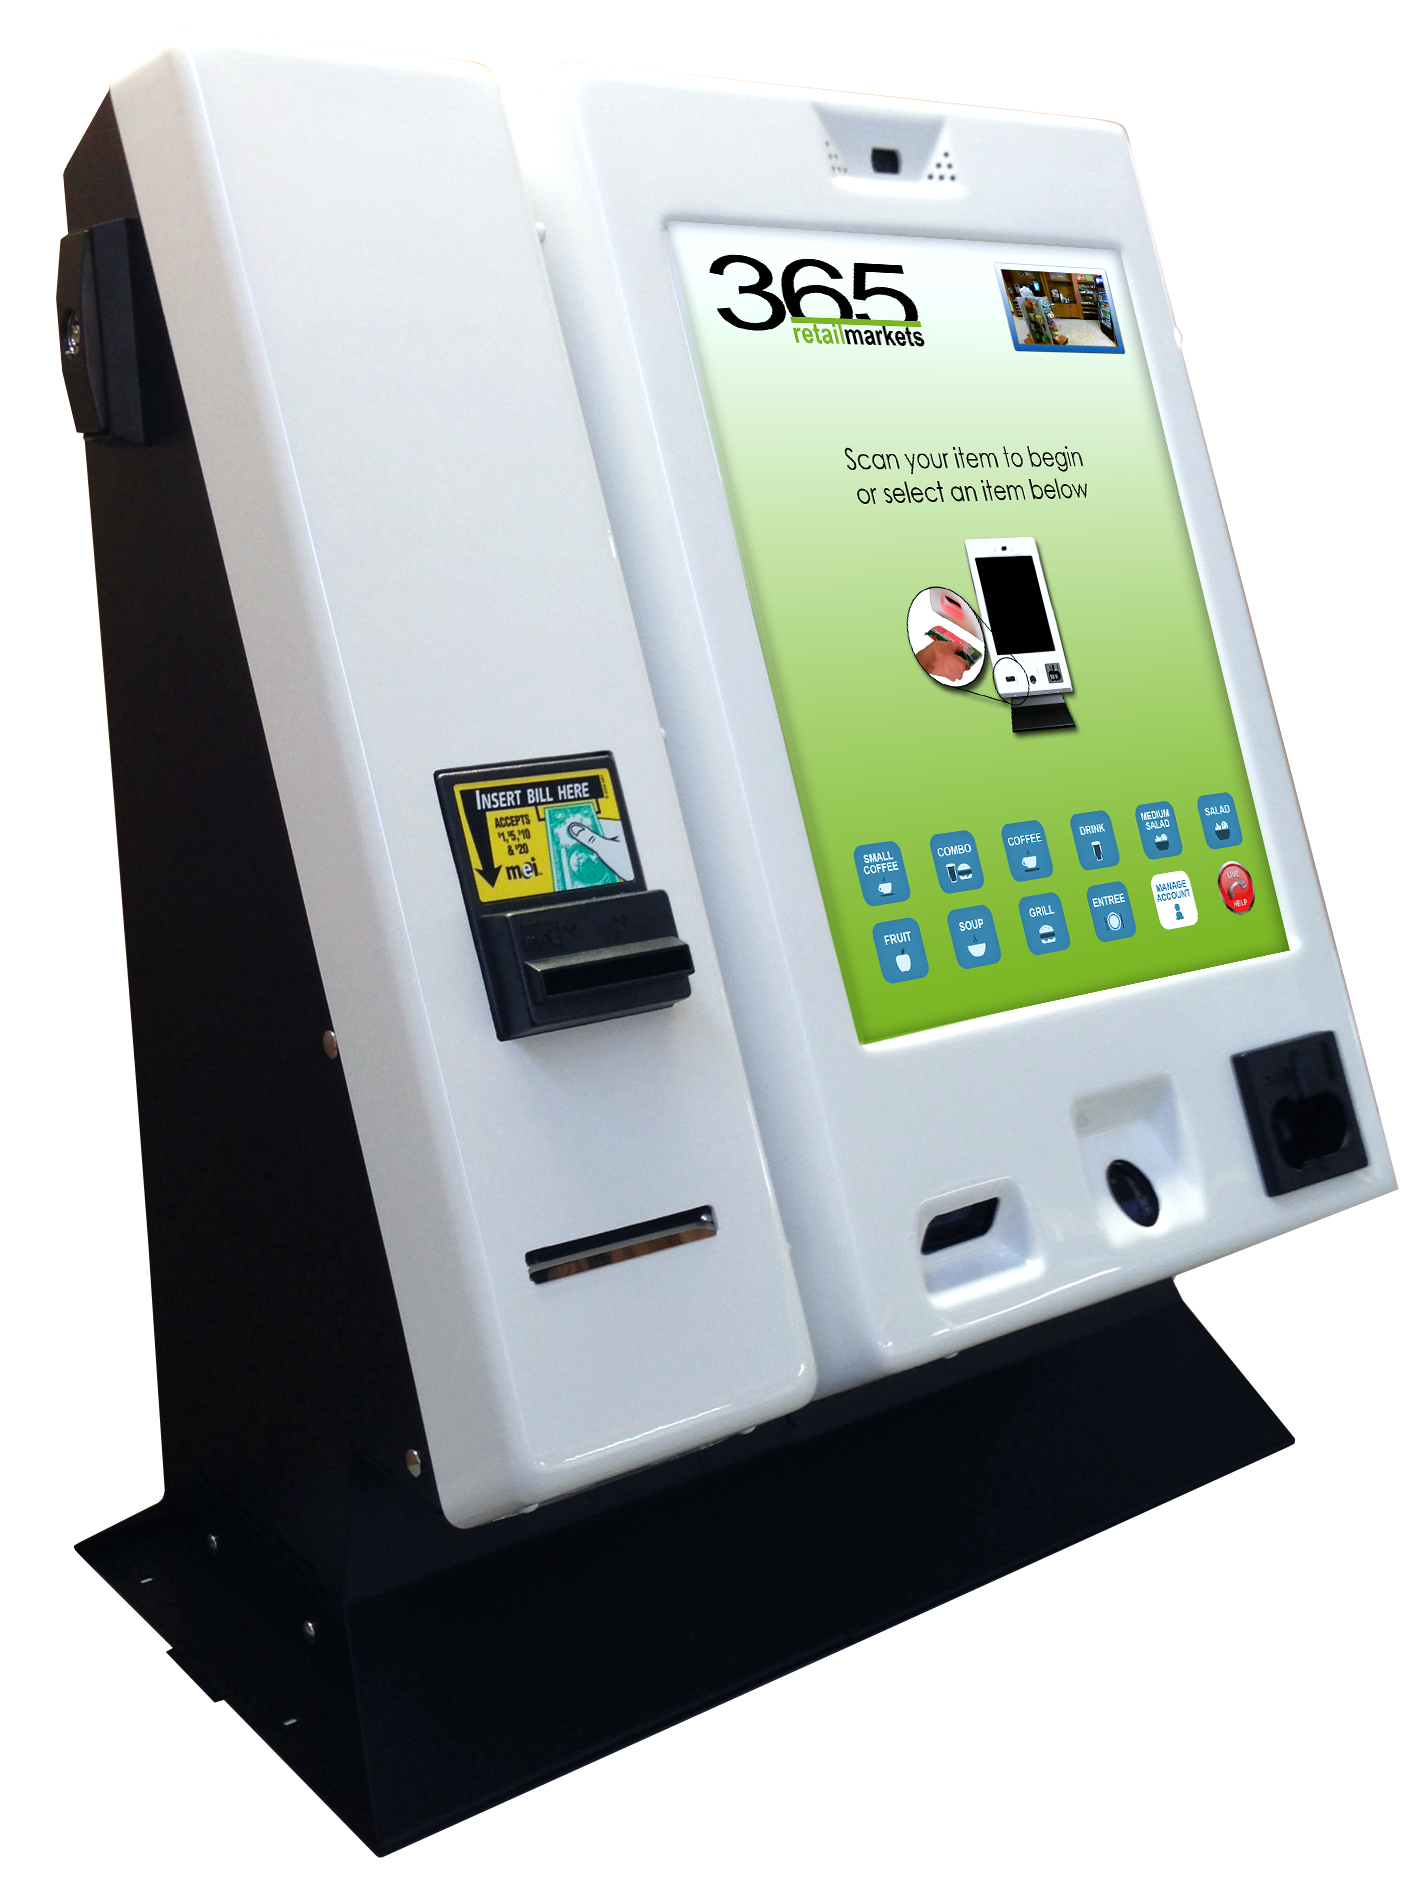 365 Unveiled New Gen3c Kiosk at the 2014 NAMA OneShow